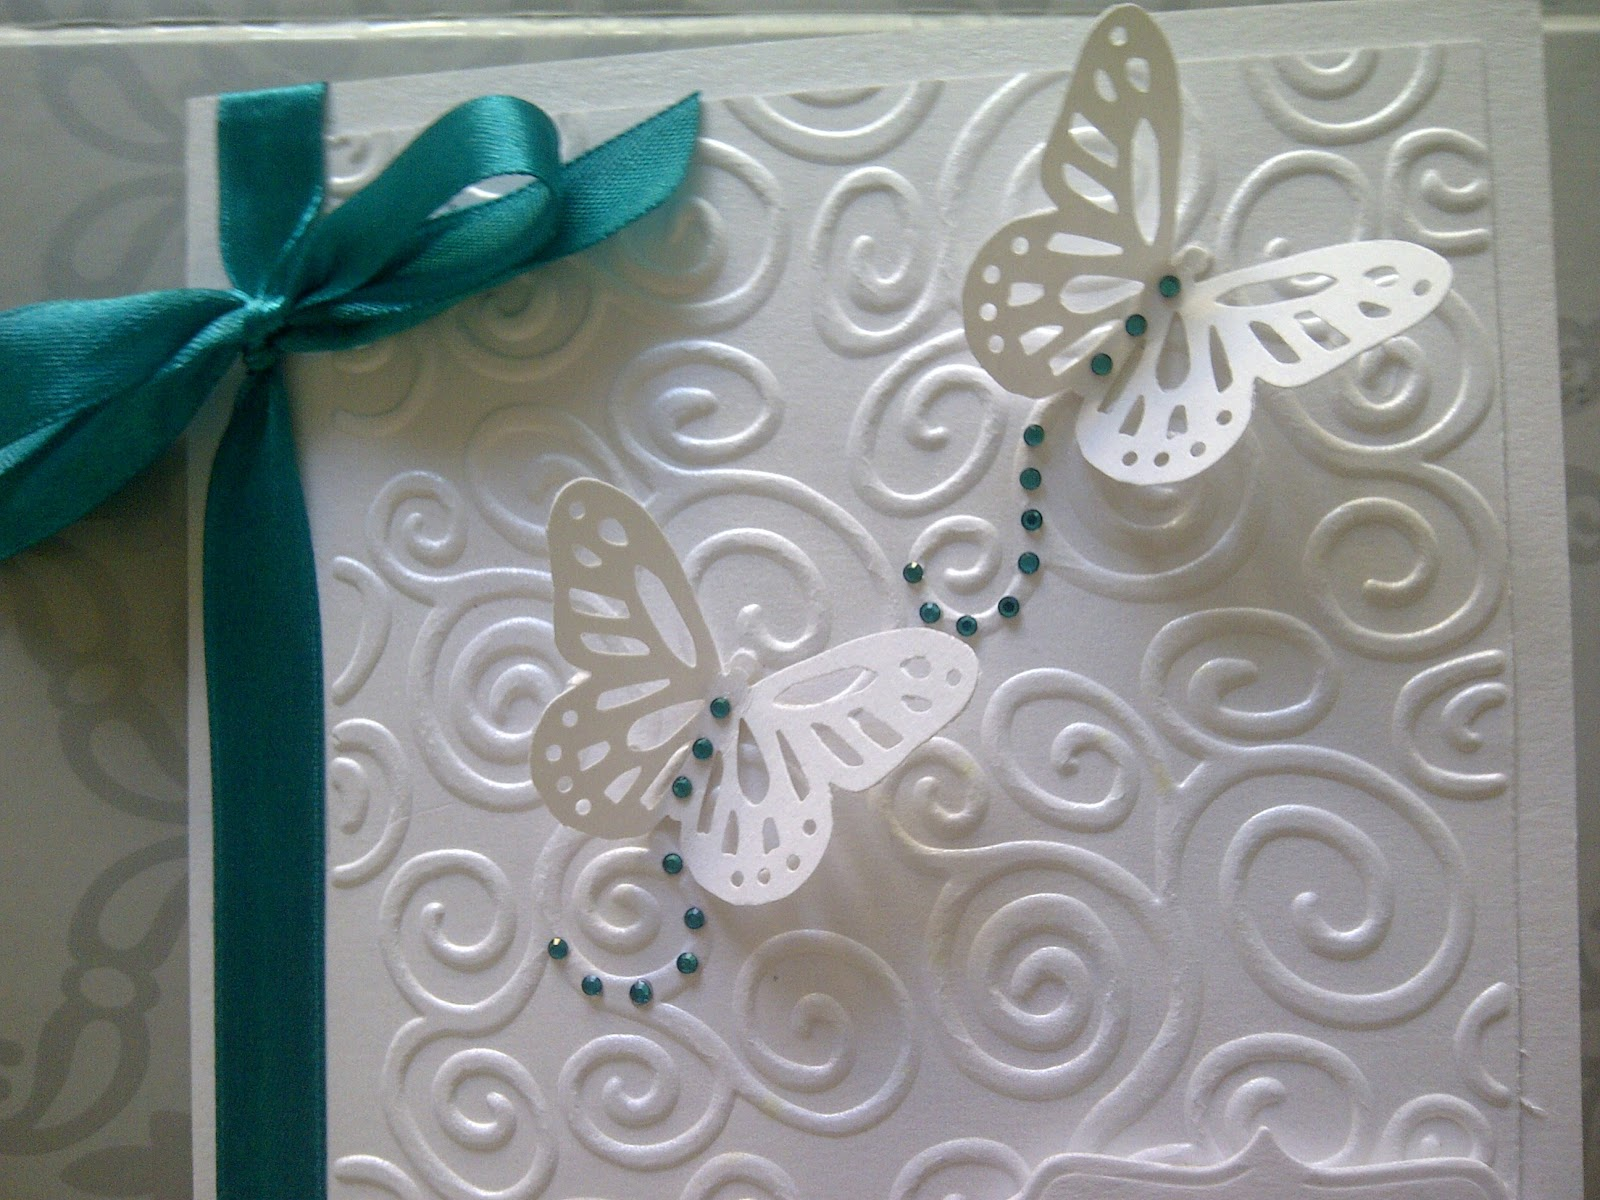 Lks invitations and wedding stationary 00971 50 466 8096 personalized butterflly embossed swirls invitation card suitable for any occasion stopboris Choice Image